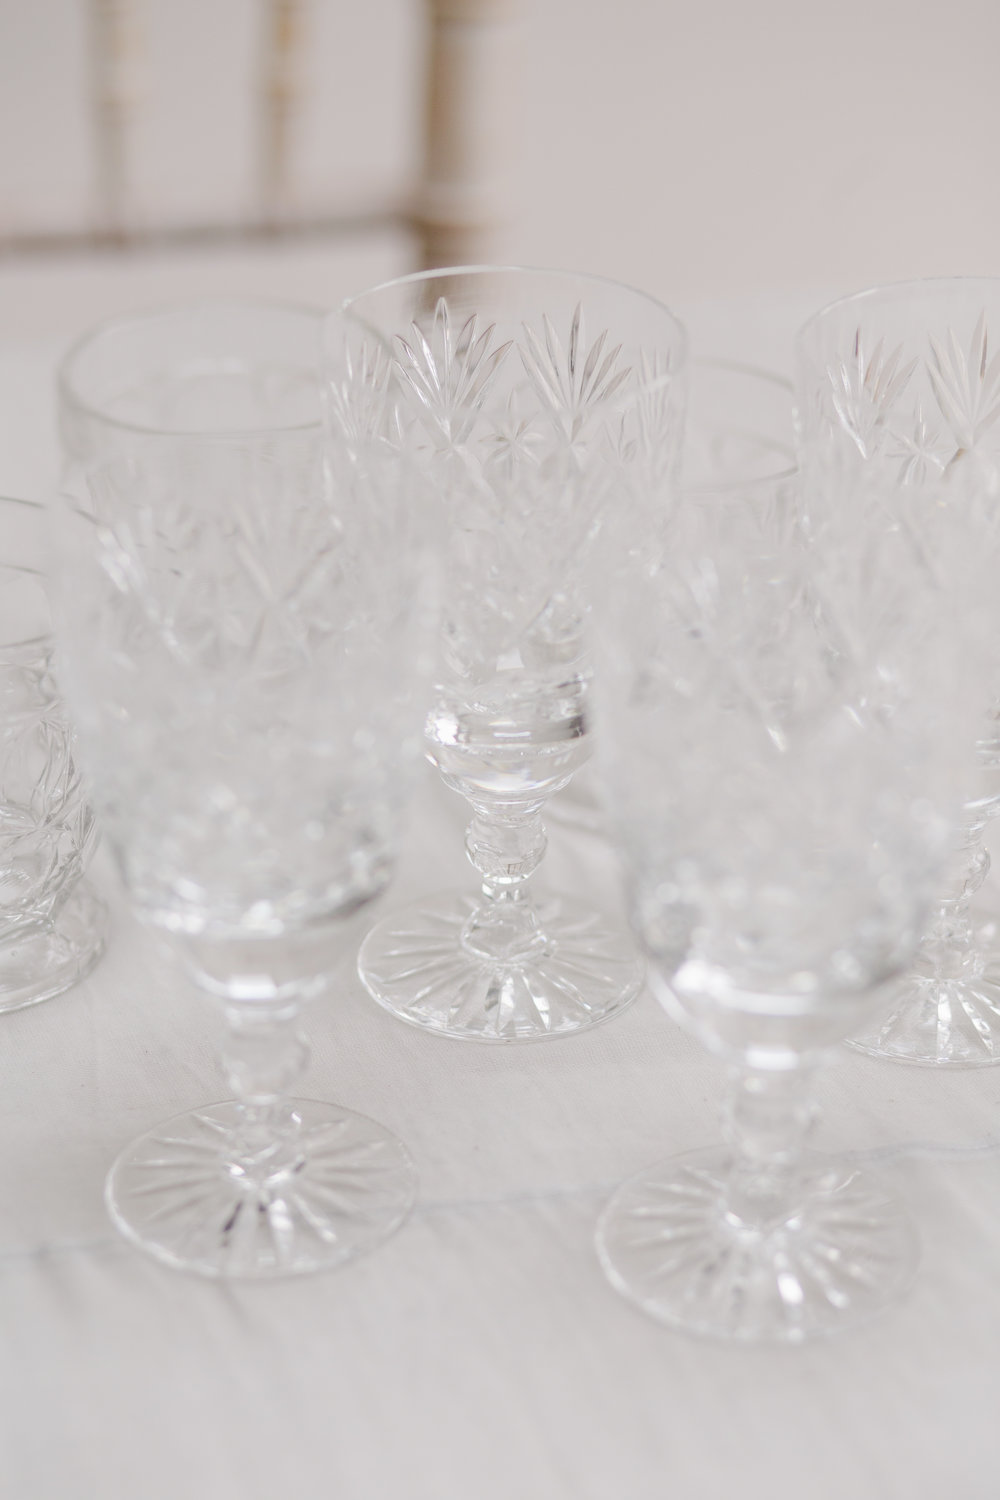 The Timeless Stylist - Vintage Glassware